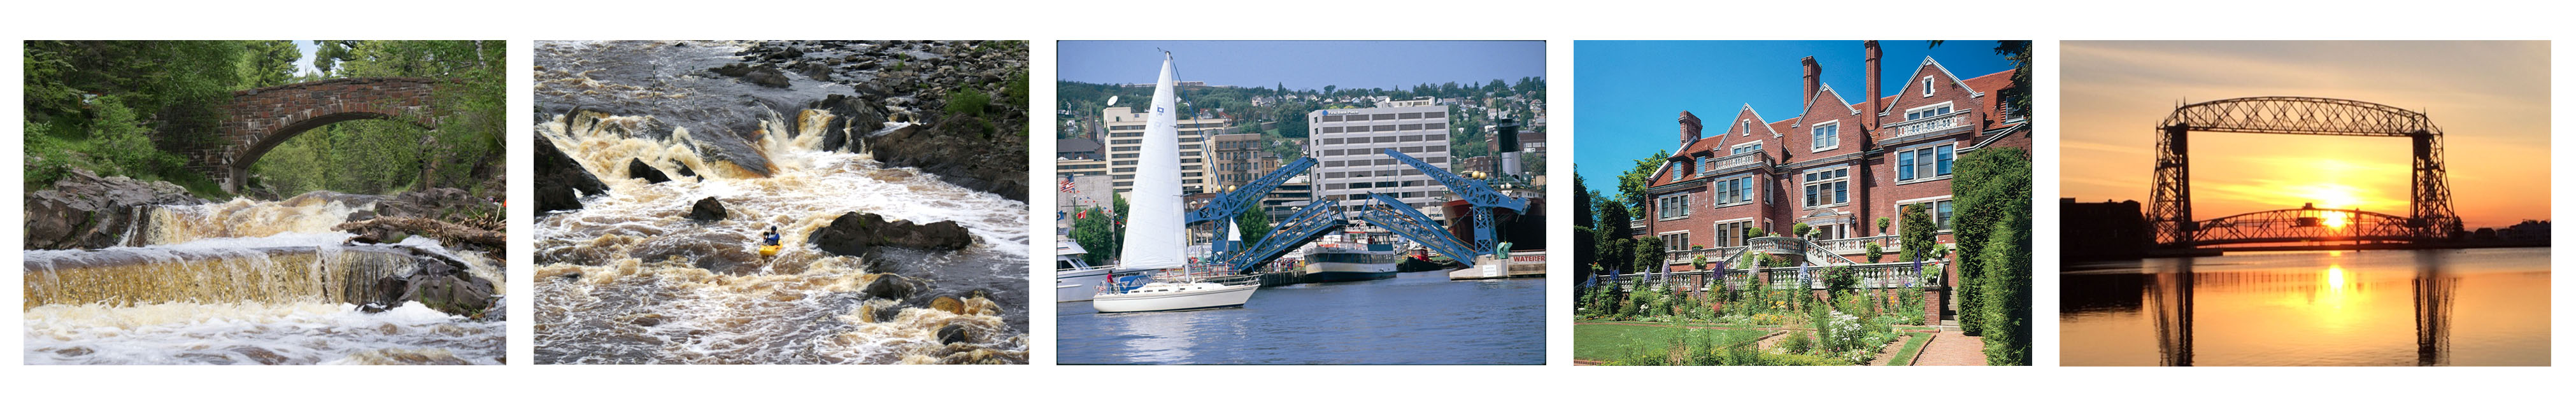 Images of Duluth